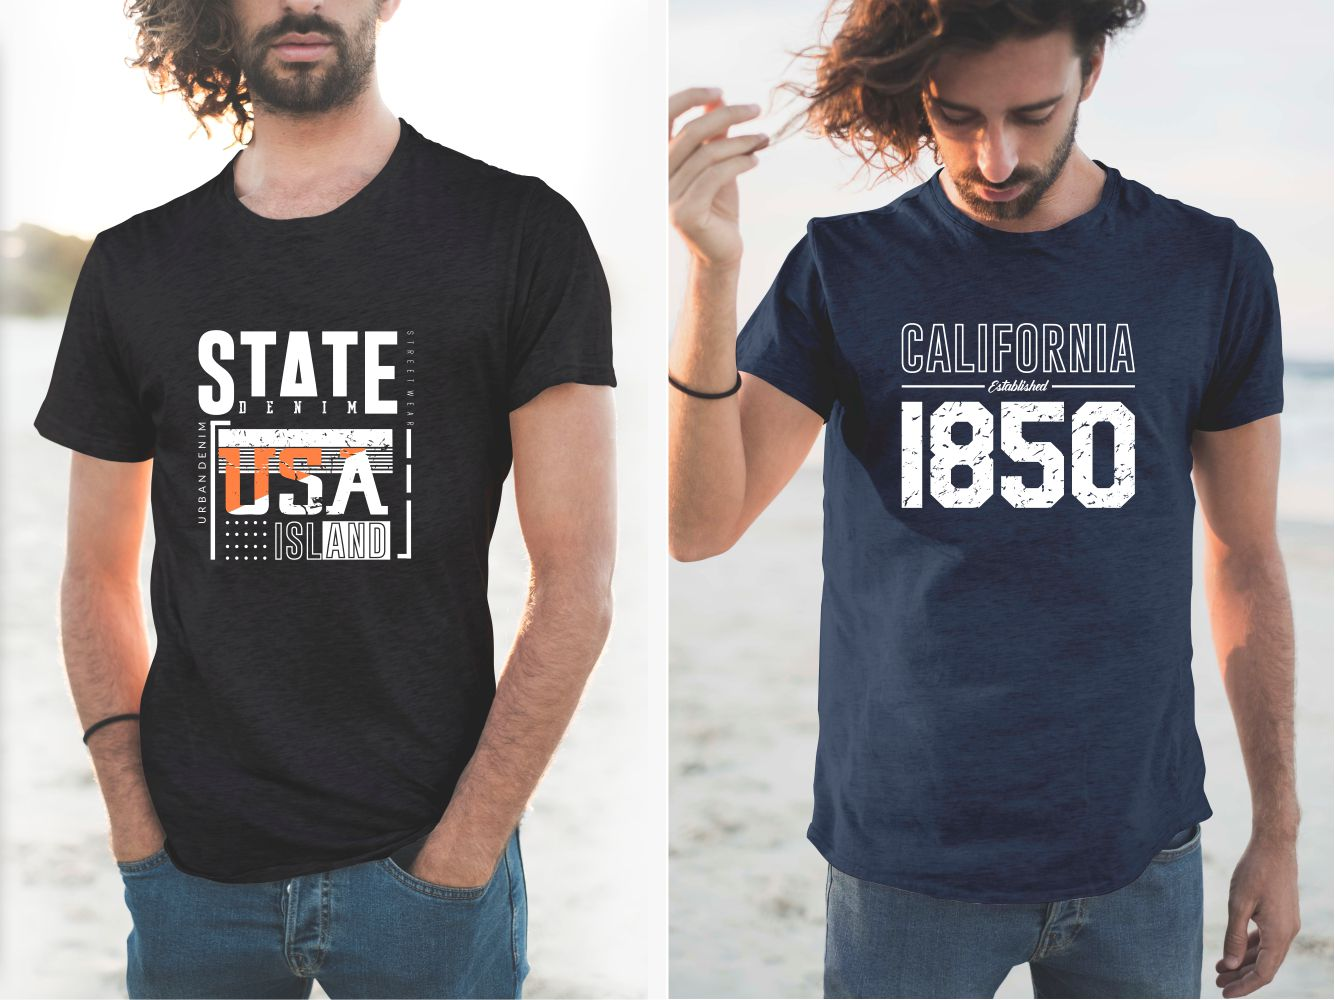 Navy blue and black California State T-shirts.